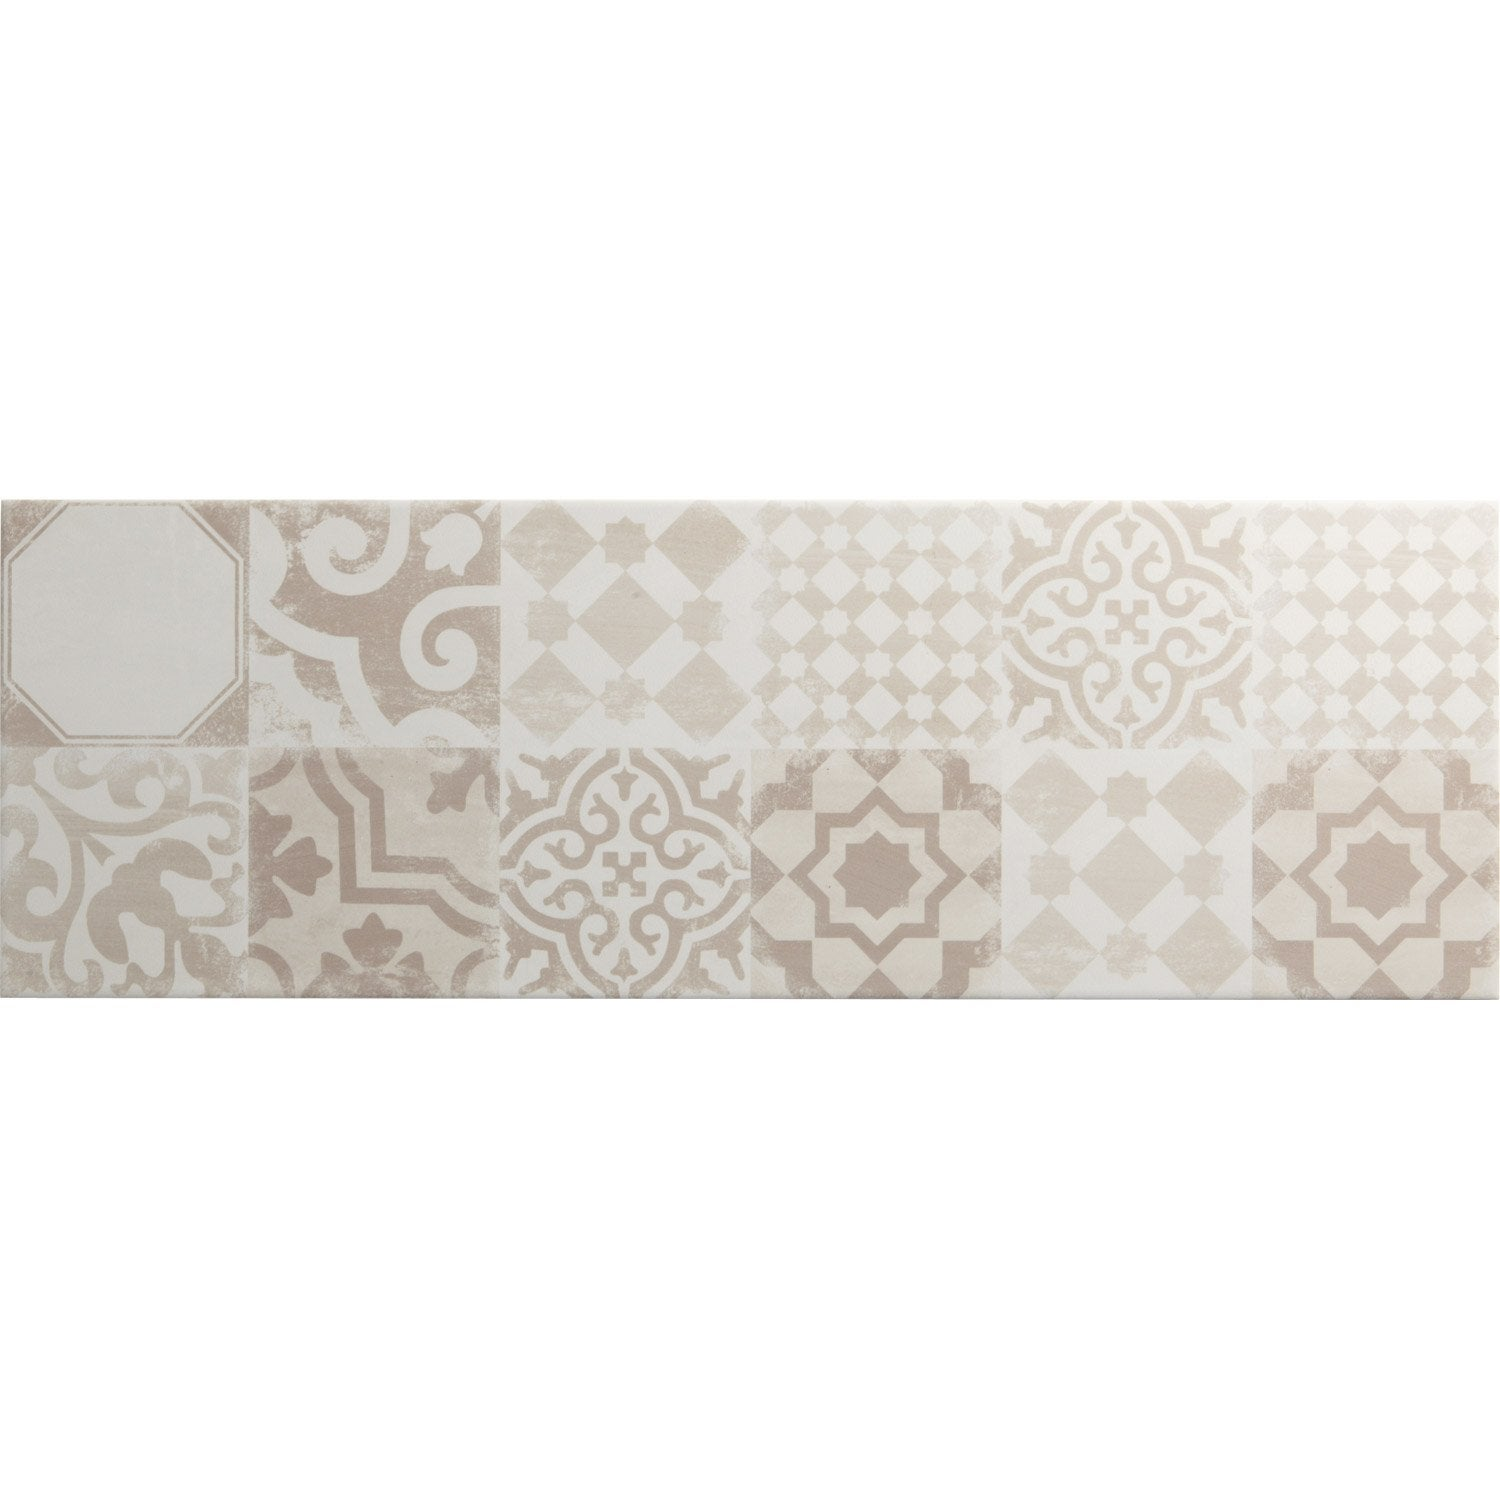 Fa ence mur mix blanc beige d cor tadelak x cm for Faience decorative murale